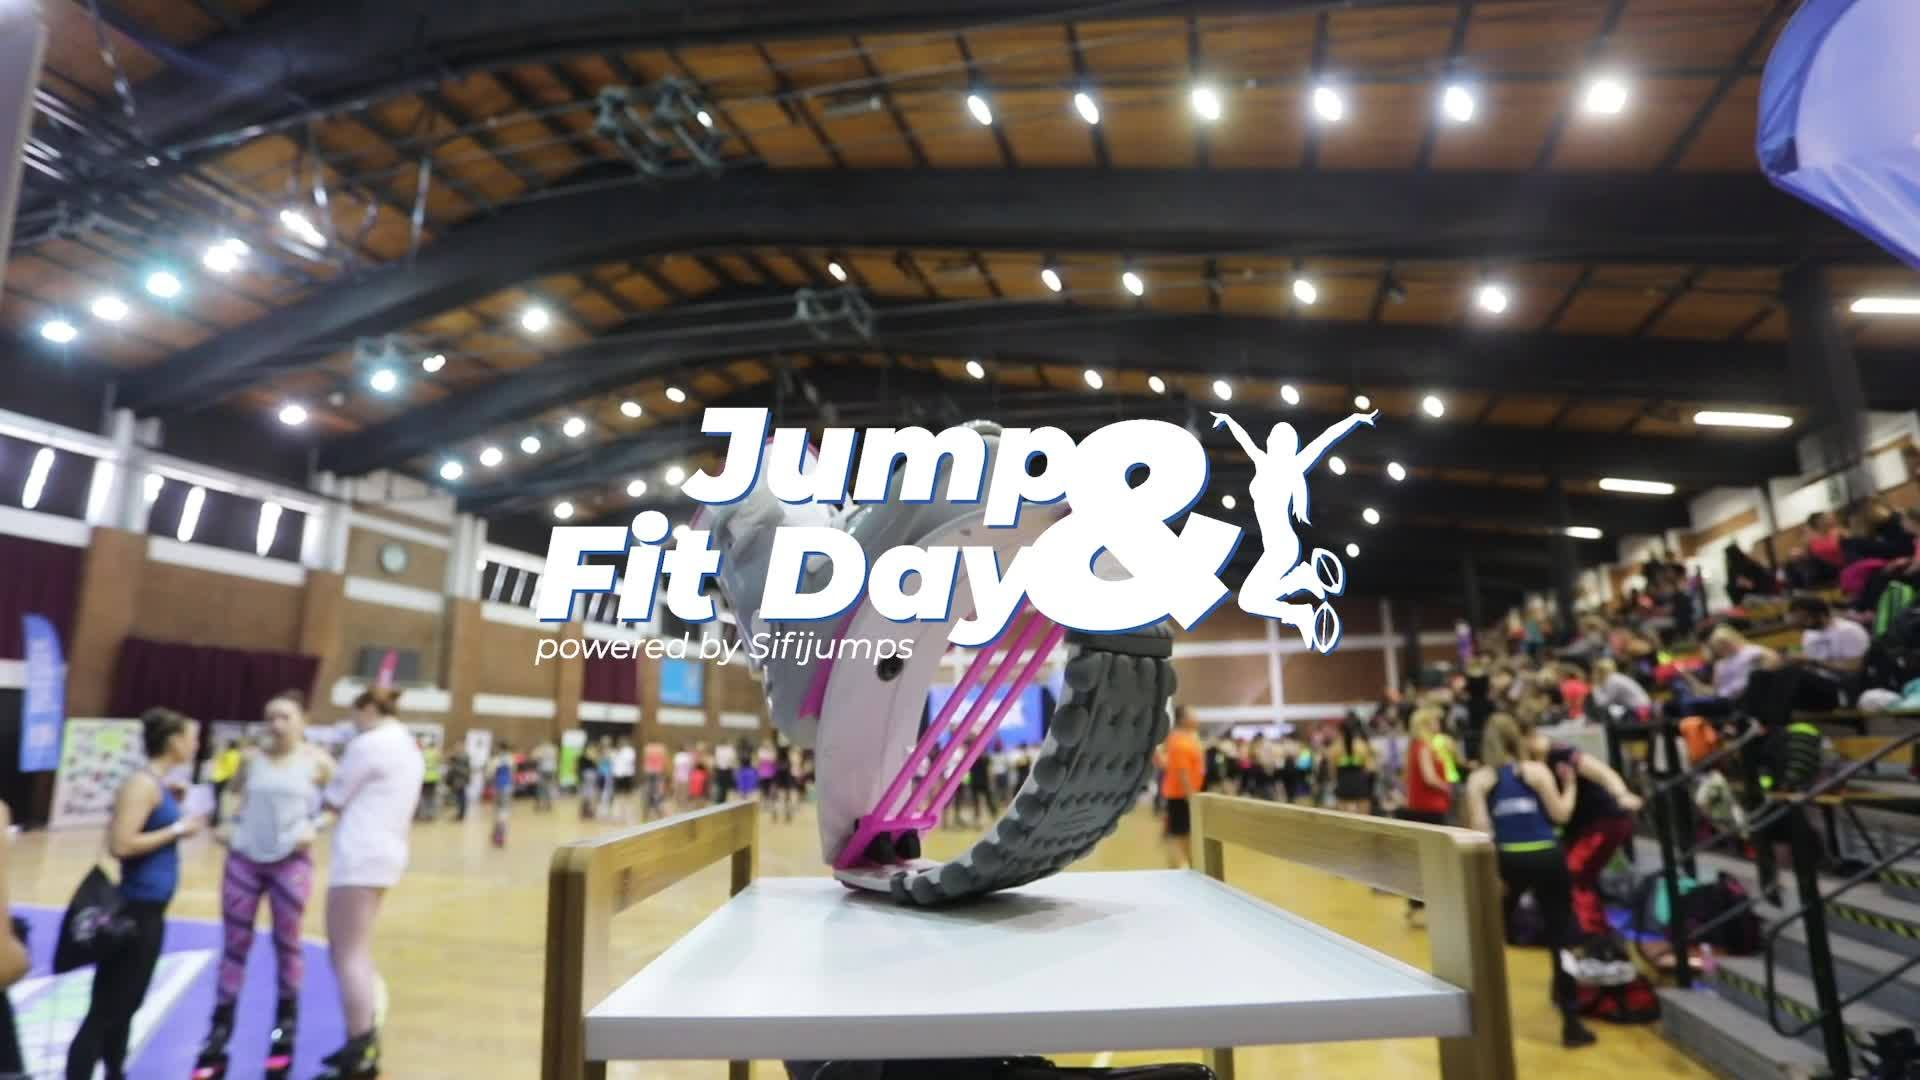 Jump&Fit Day powered by SifiJUMPS